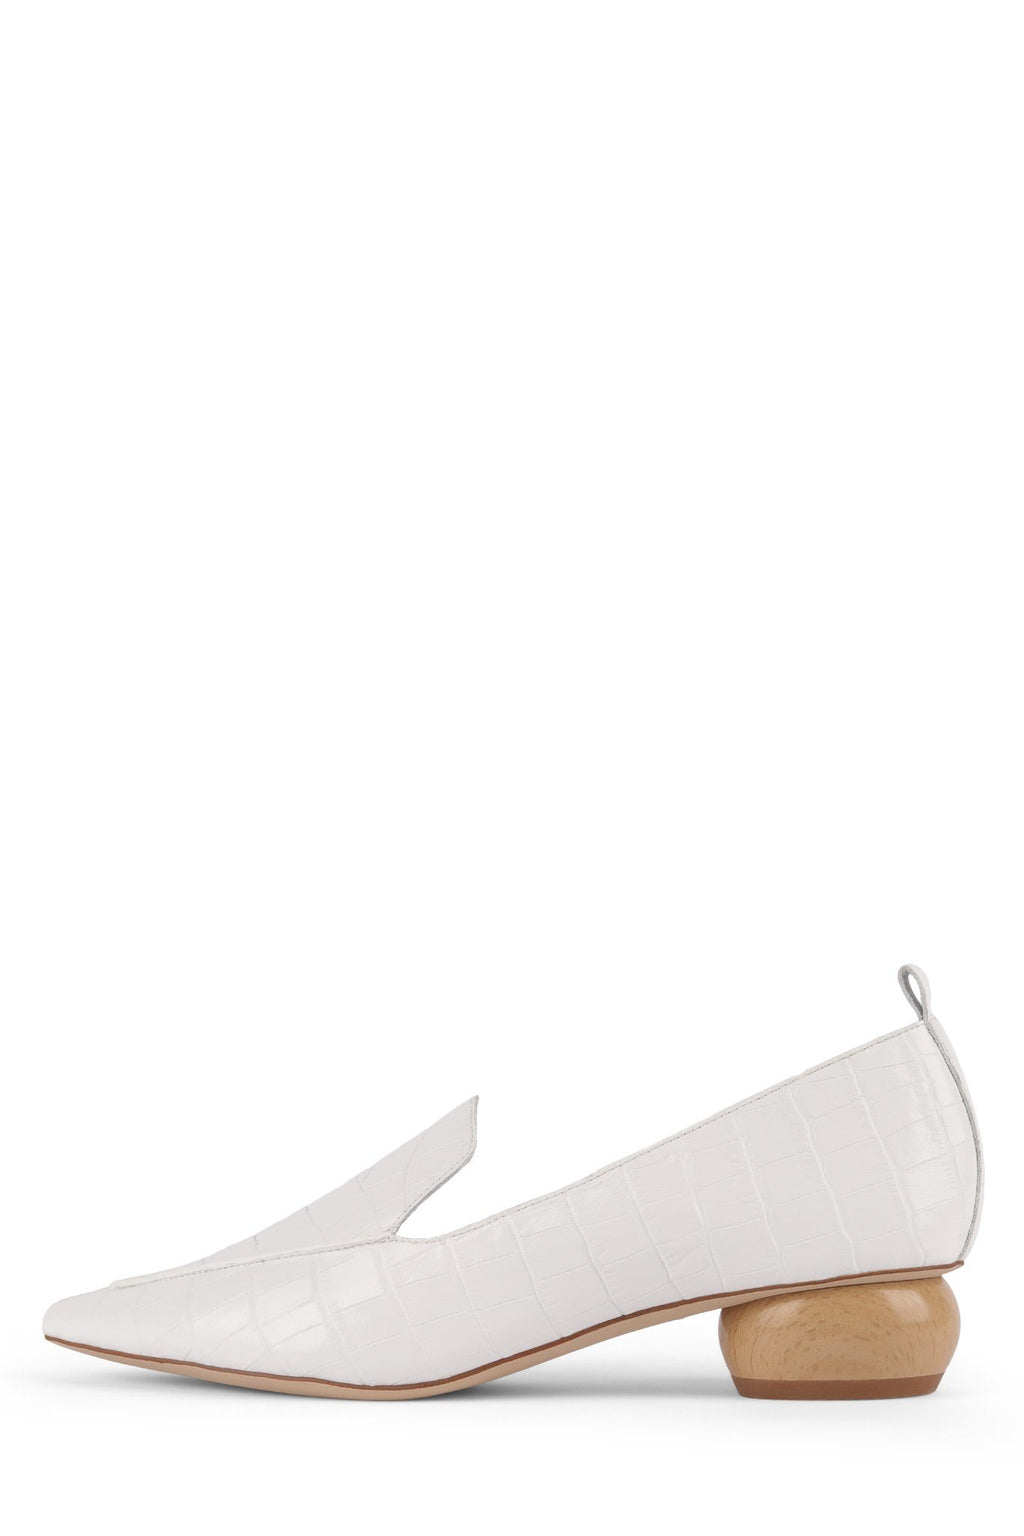 VIONA-WD Pump Jeffrey Campbell White Croco 5